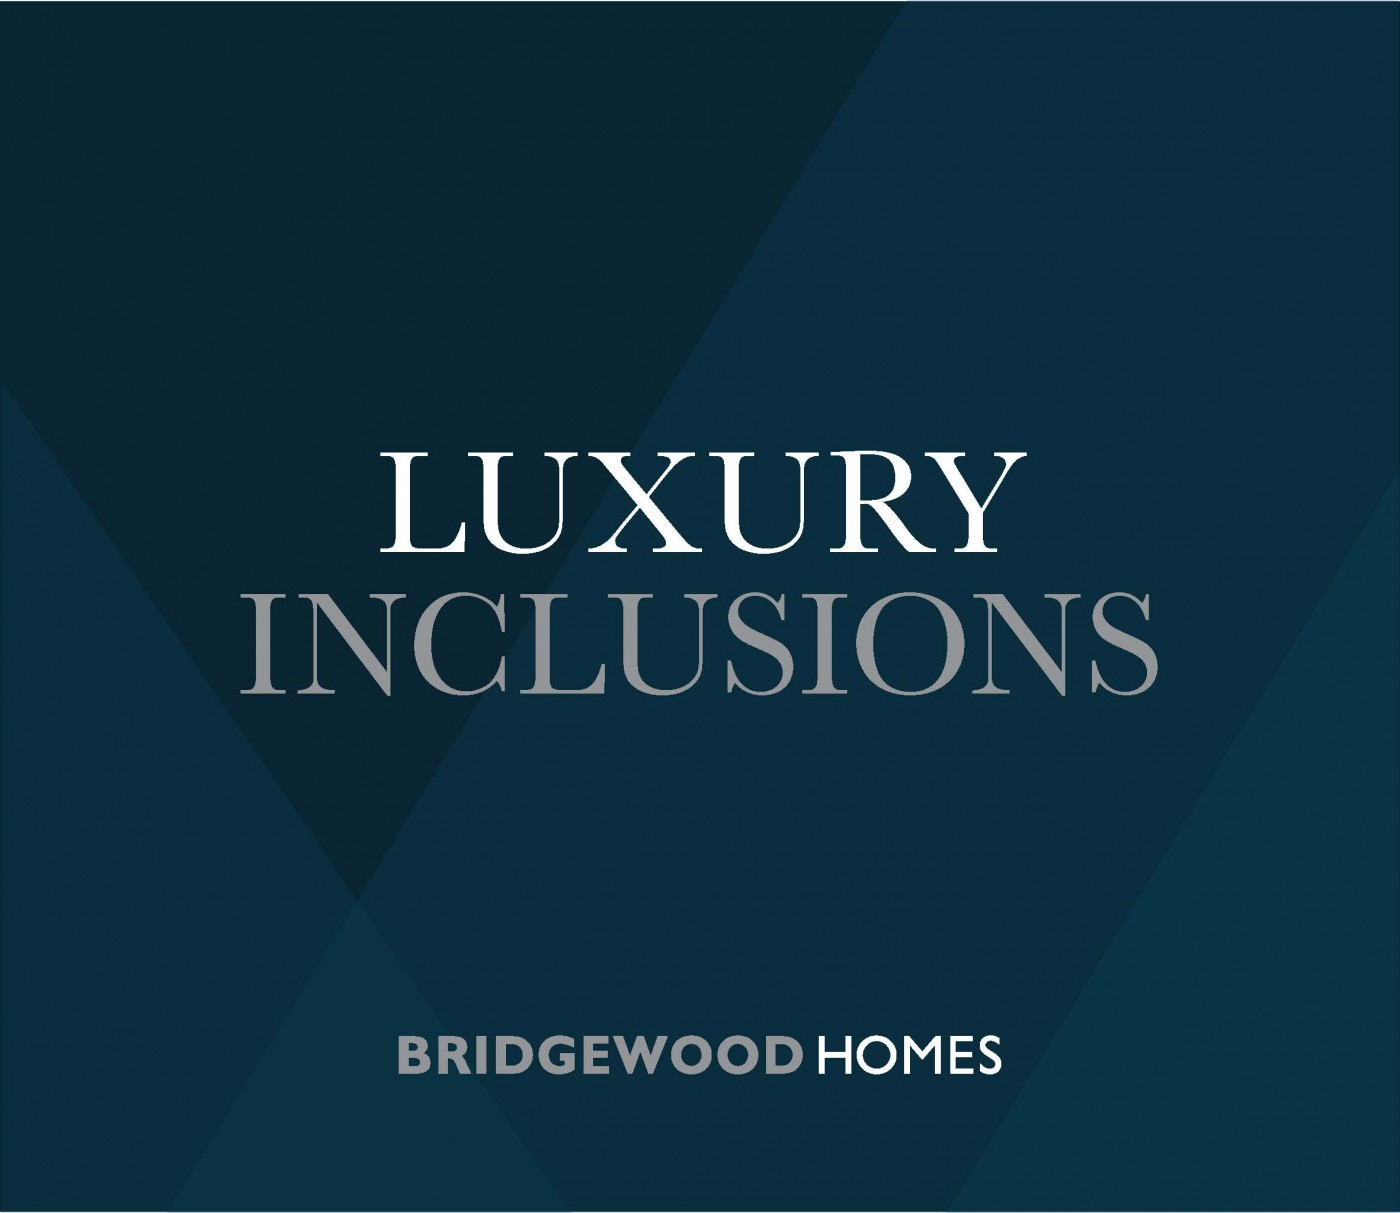 View Our Luxury Inclusions